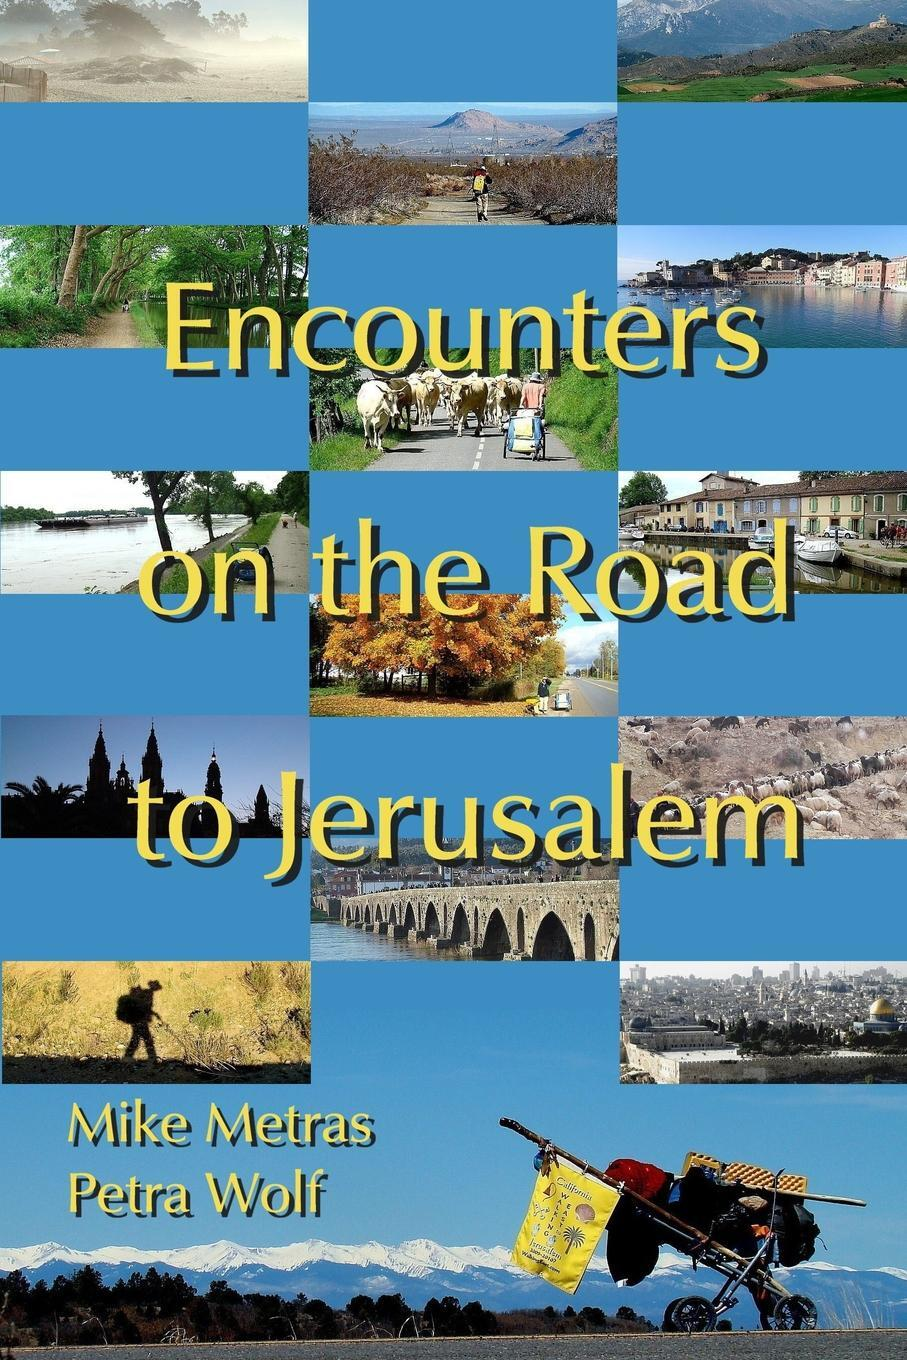 Encounters on the Road to Jerusalem. Michael Metras, Petra Wolf